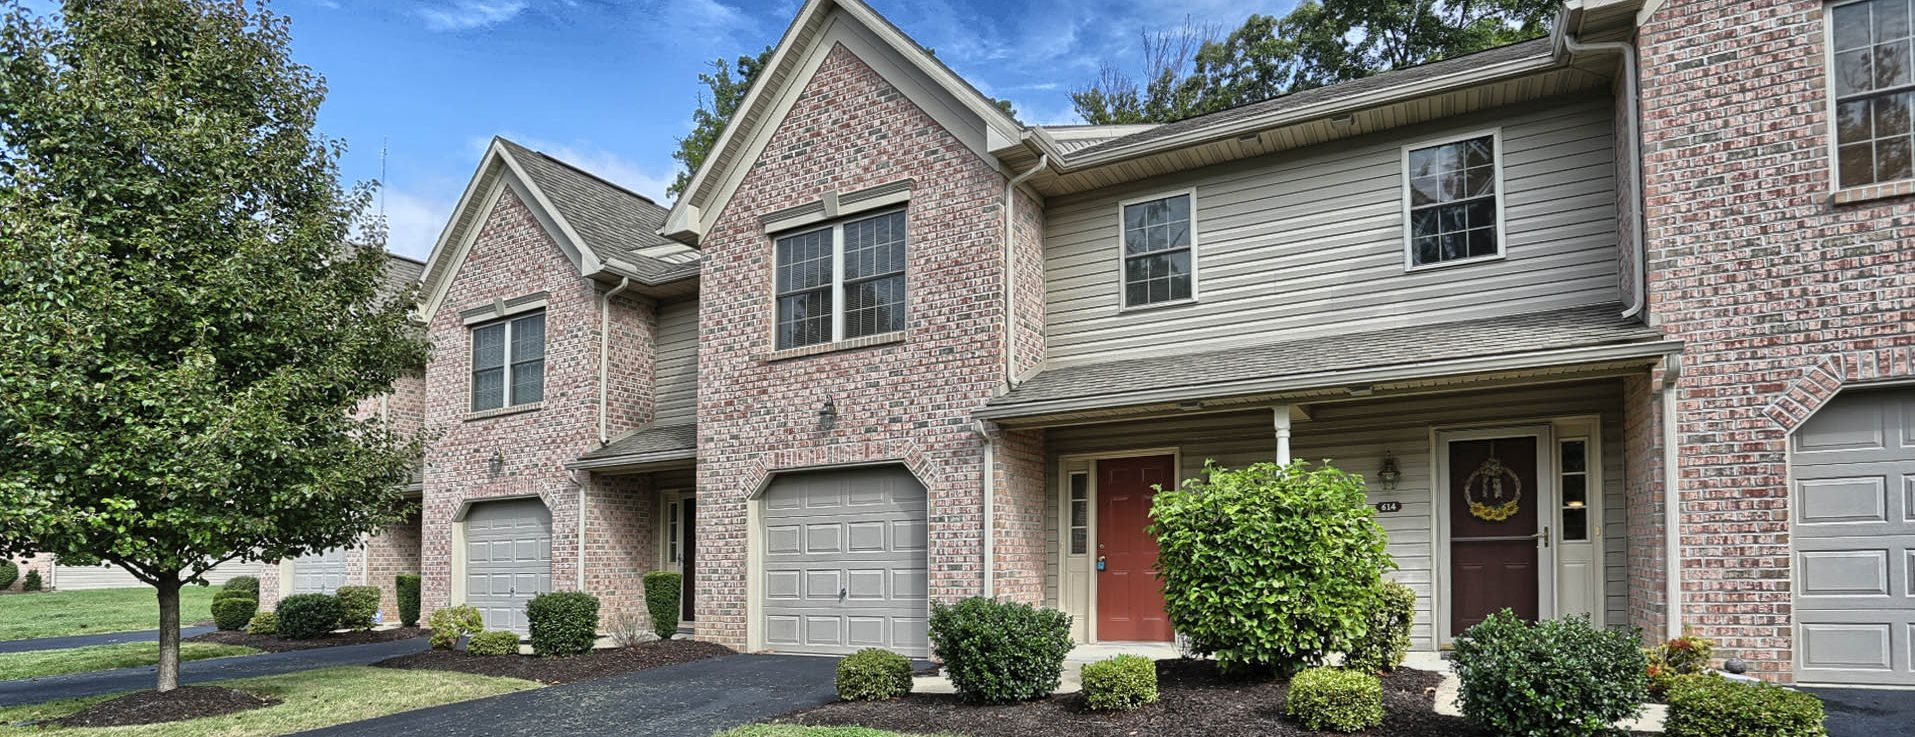 Harrisburg, PA Apartments | Park View Townhomes | Property Management, Inc.